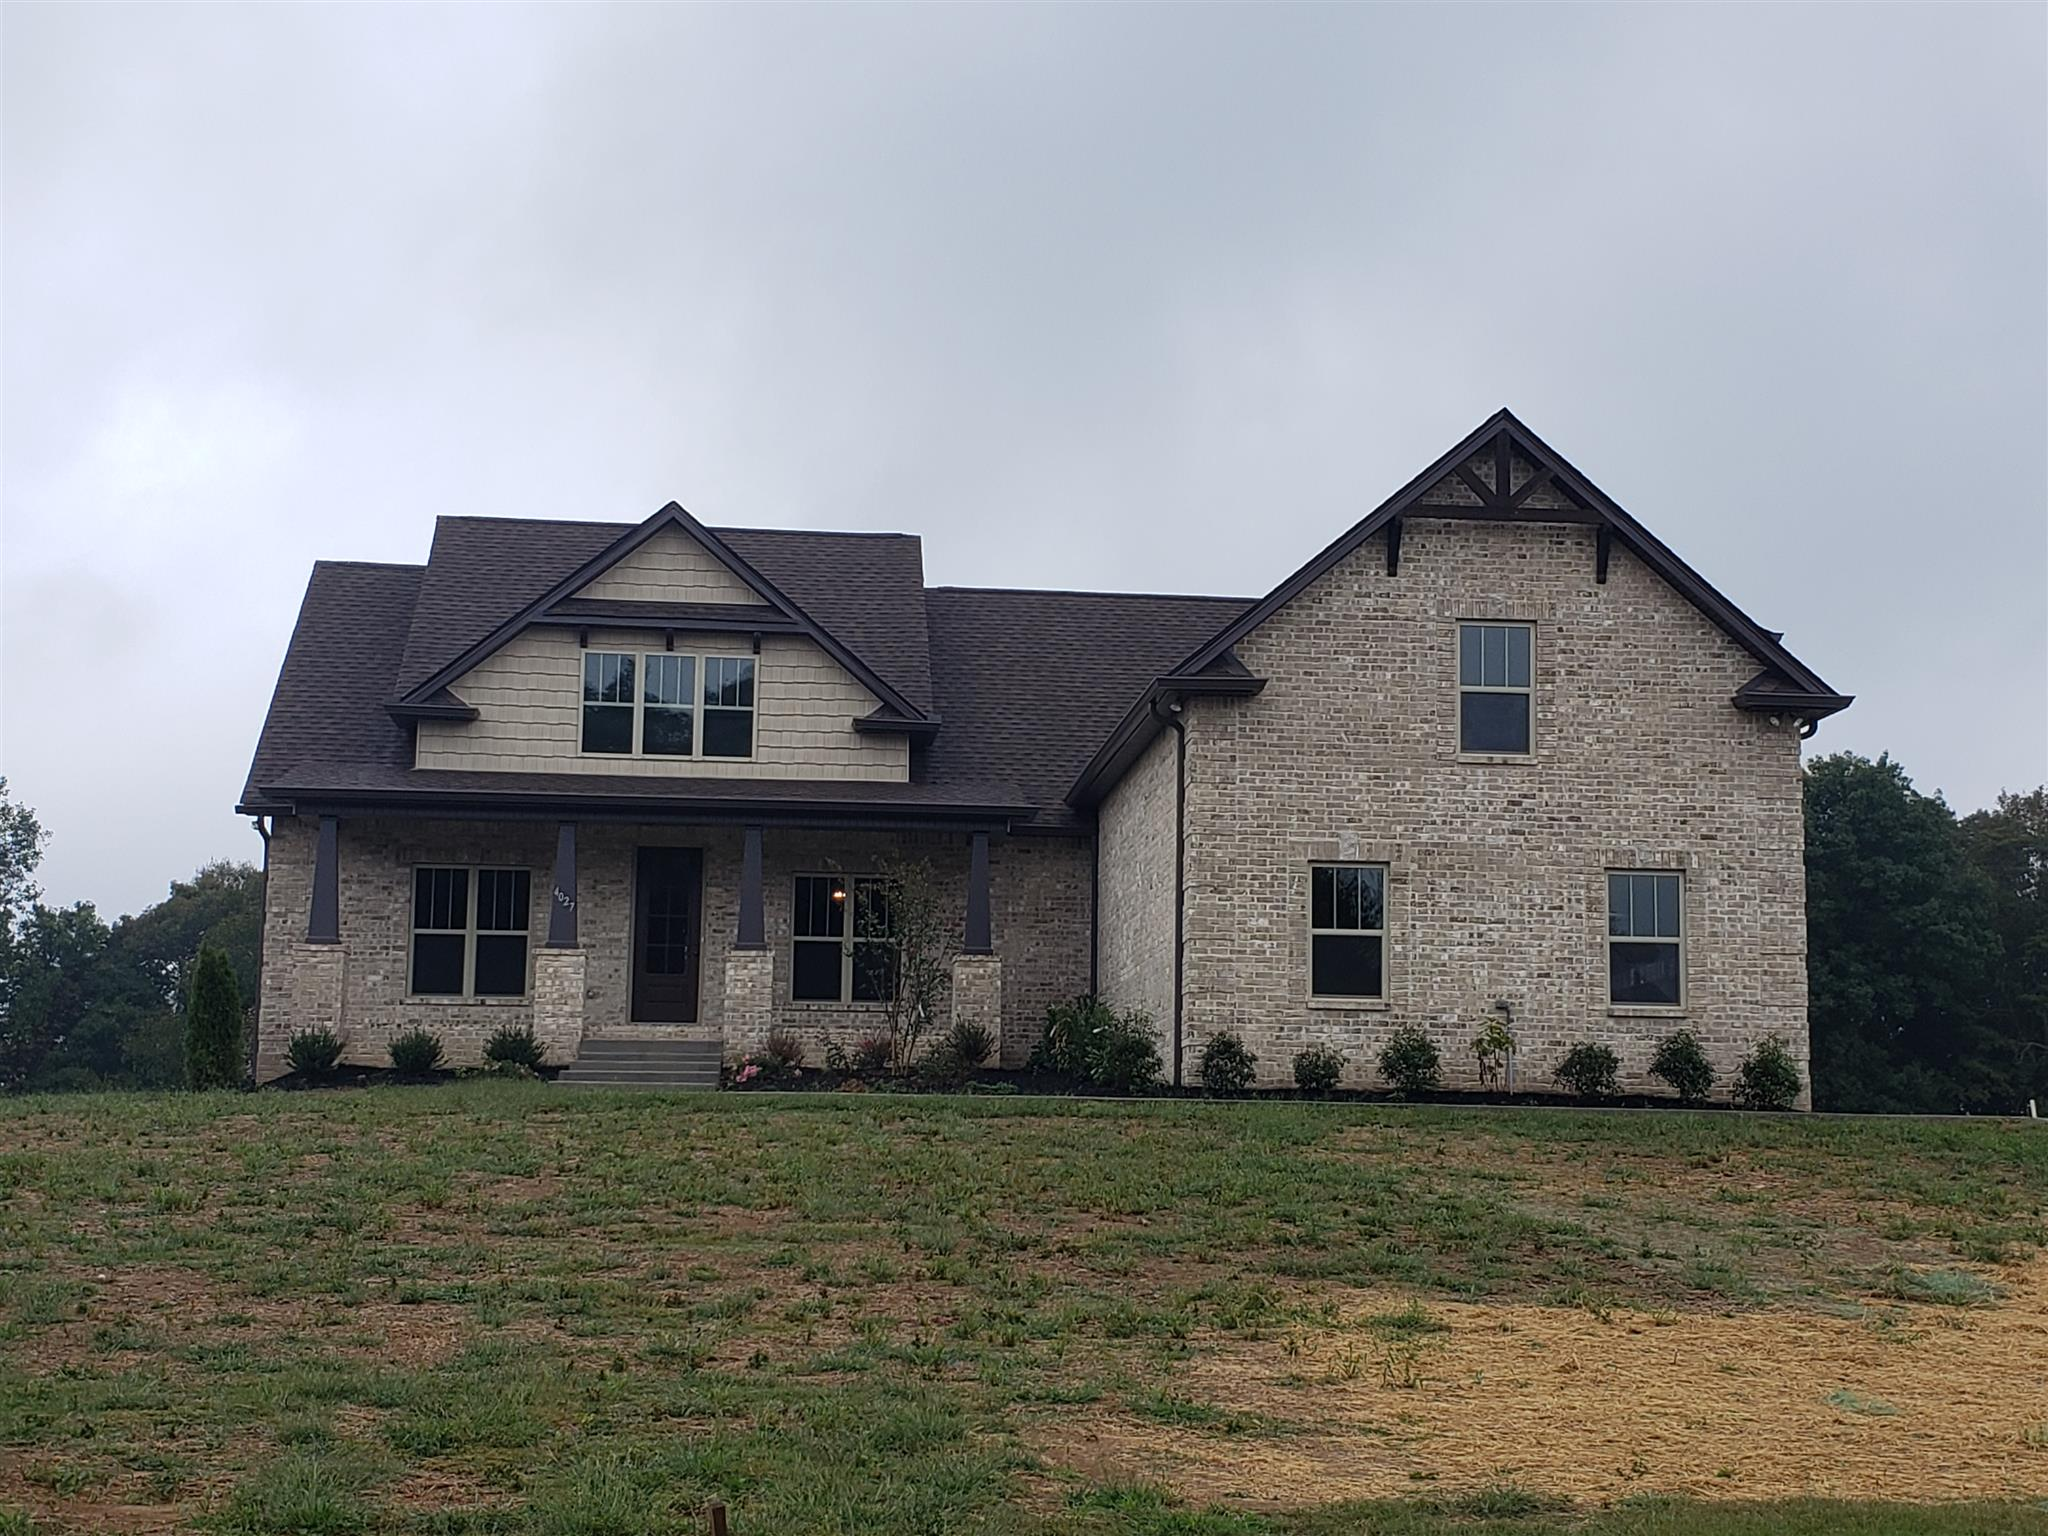 4027 Ironwood Dr, Greenbrier, TN 37073 - Greenbrier, TN real estate listing